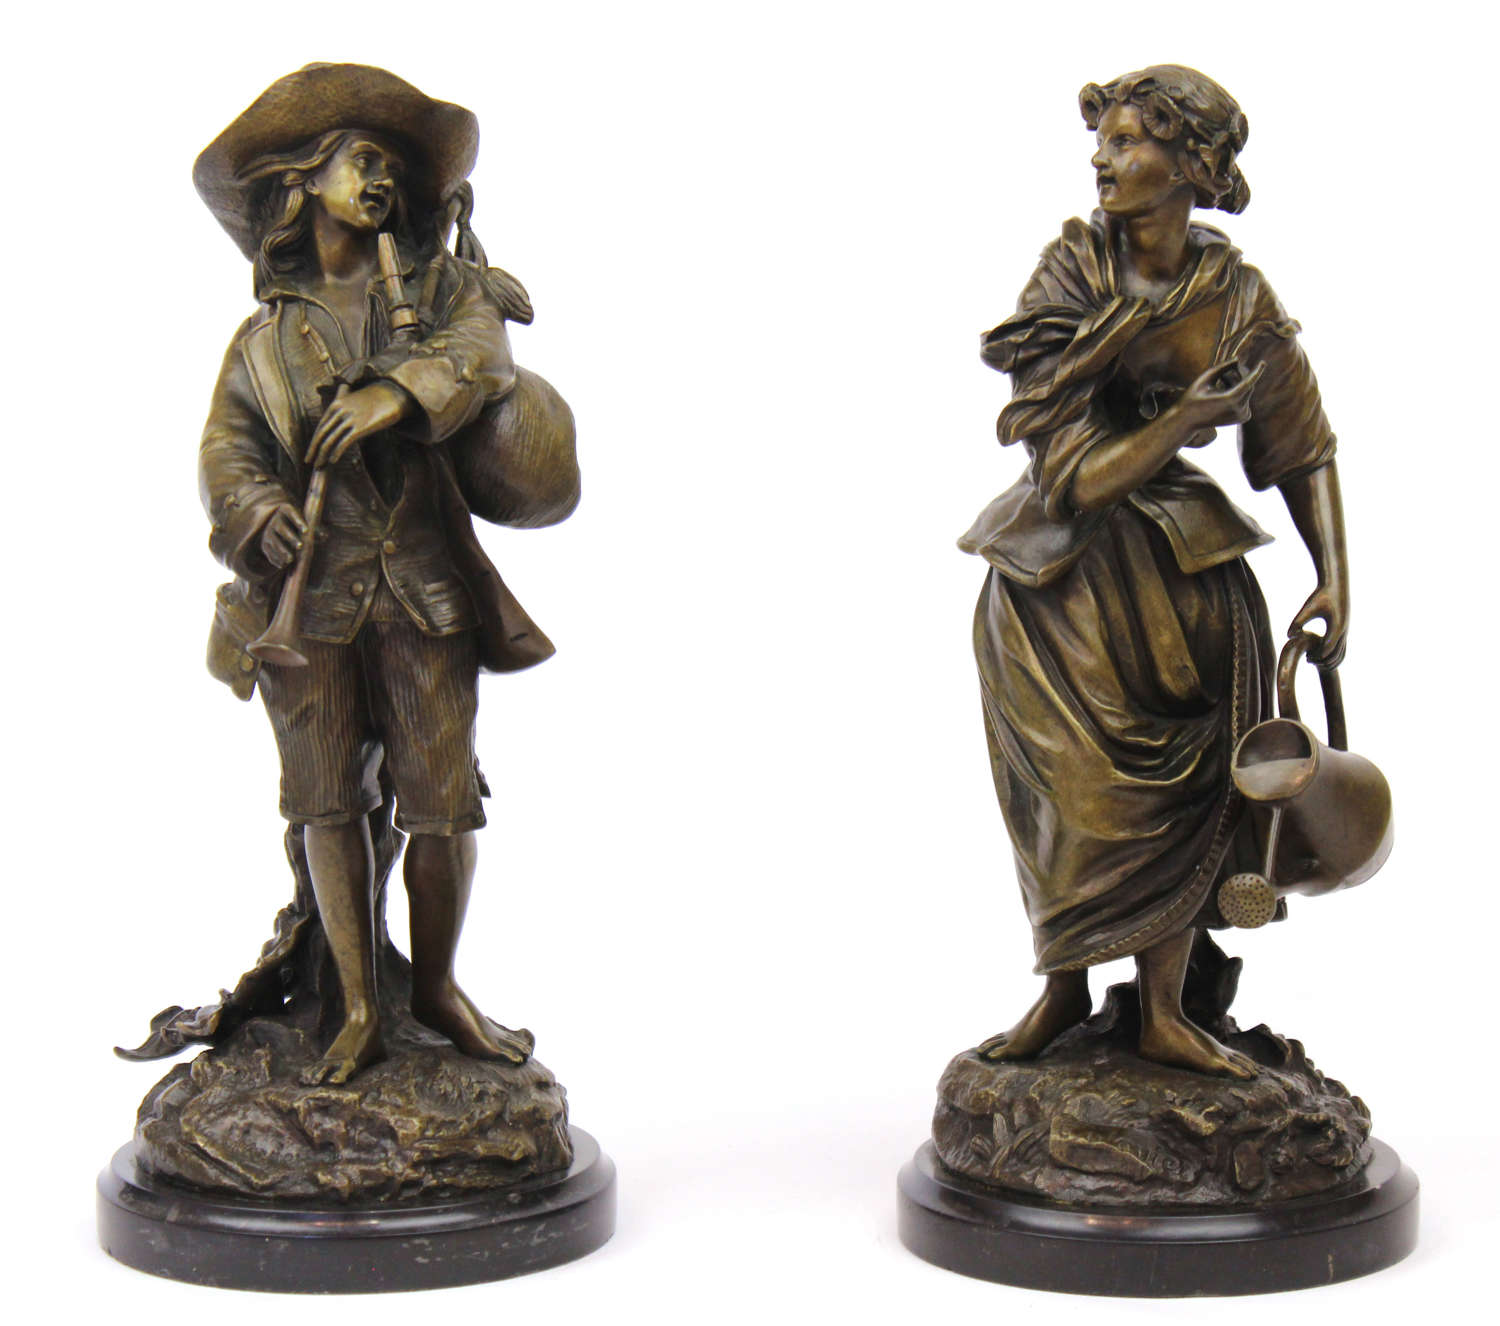 A Pair of 19th Century French Bronze Alpine Figures